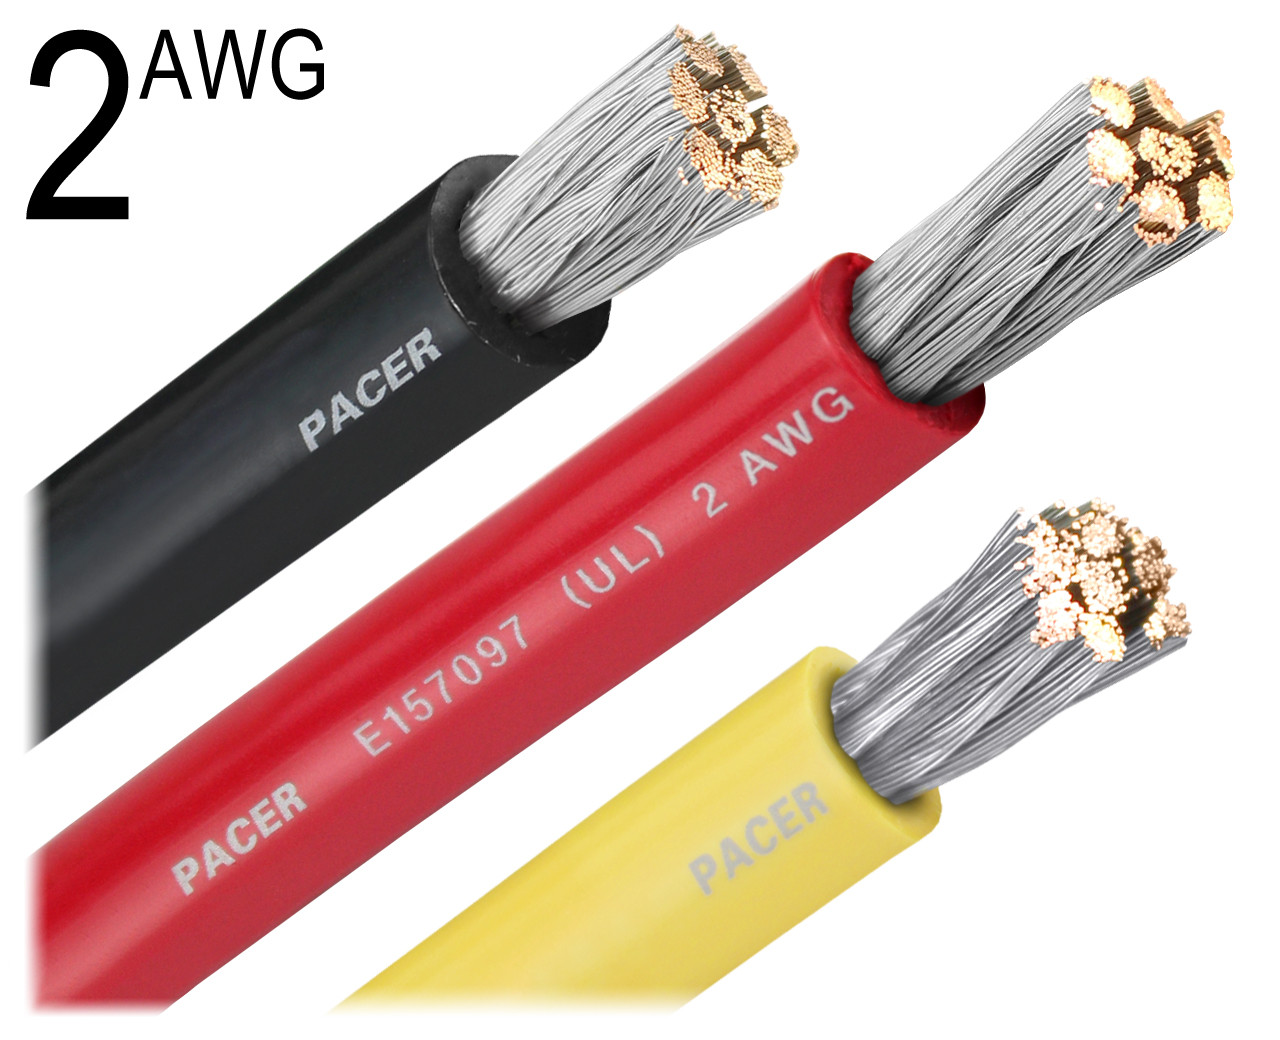 2 AWG Gauge Tinned Marine Battery Cable